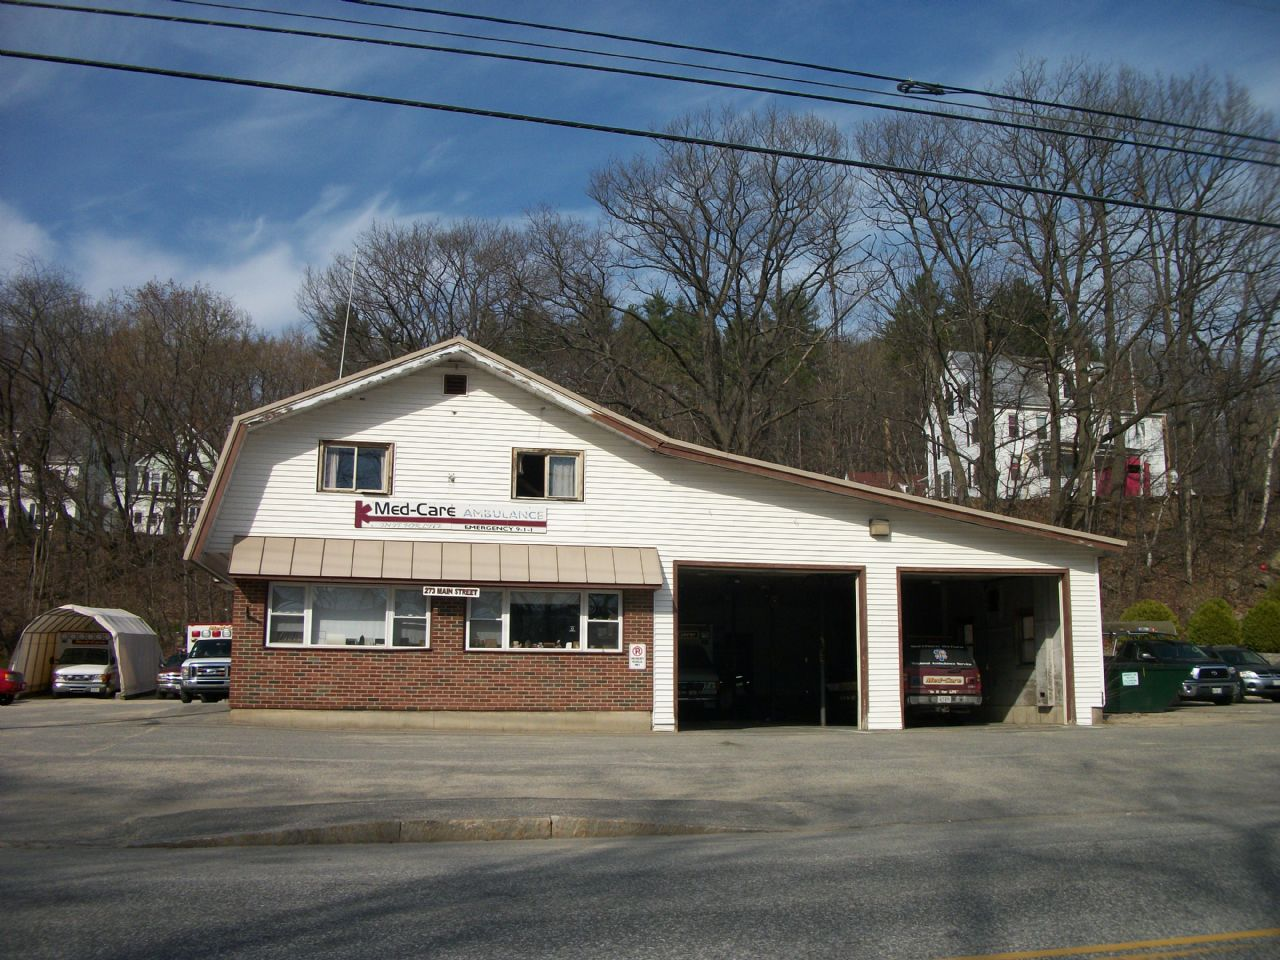 Commercial Building 4 Car Garage 3offices 3 Bedroom Apartment Above 273 Main Street Mexico Me